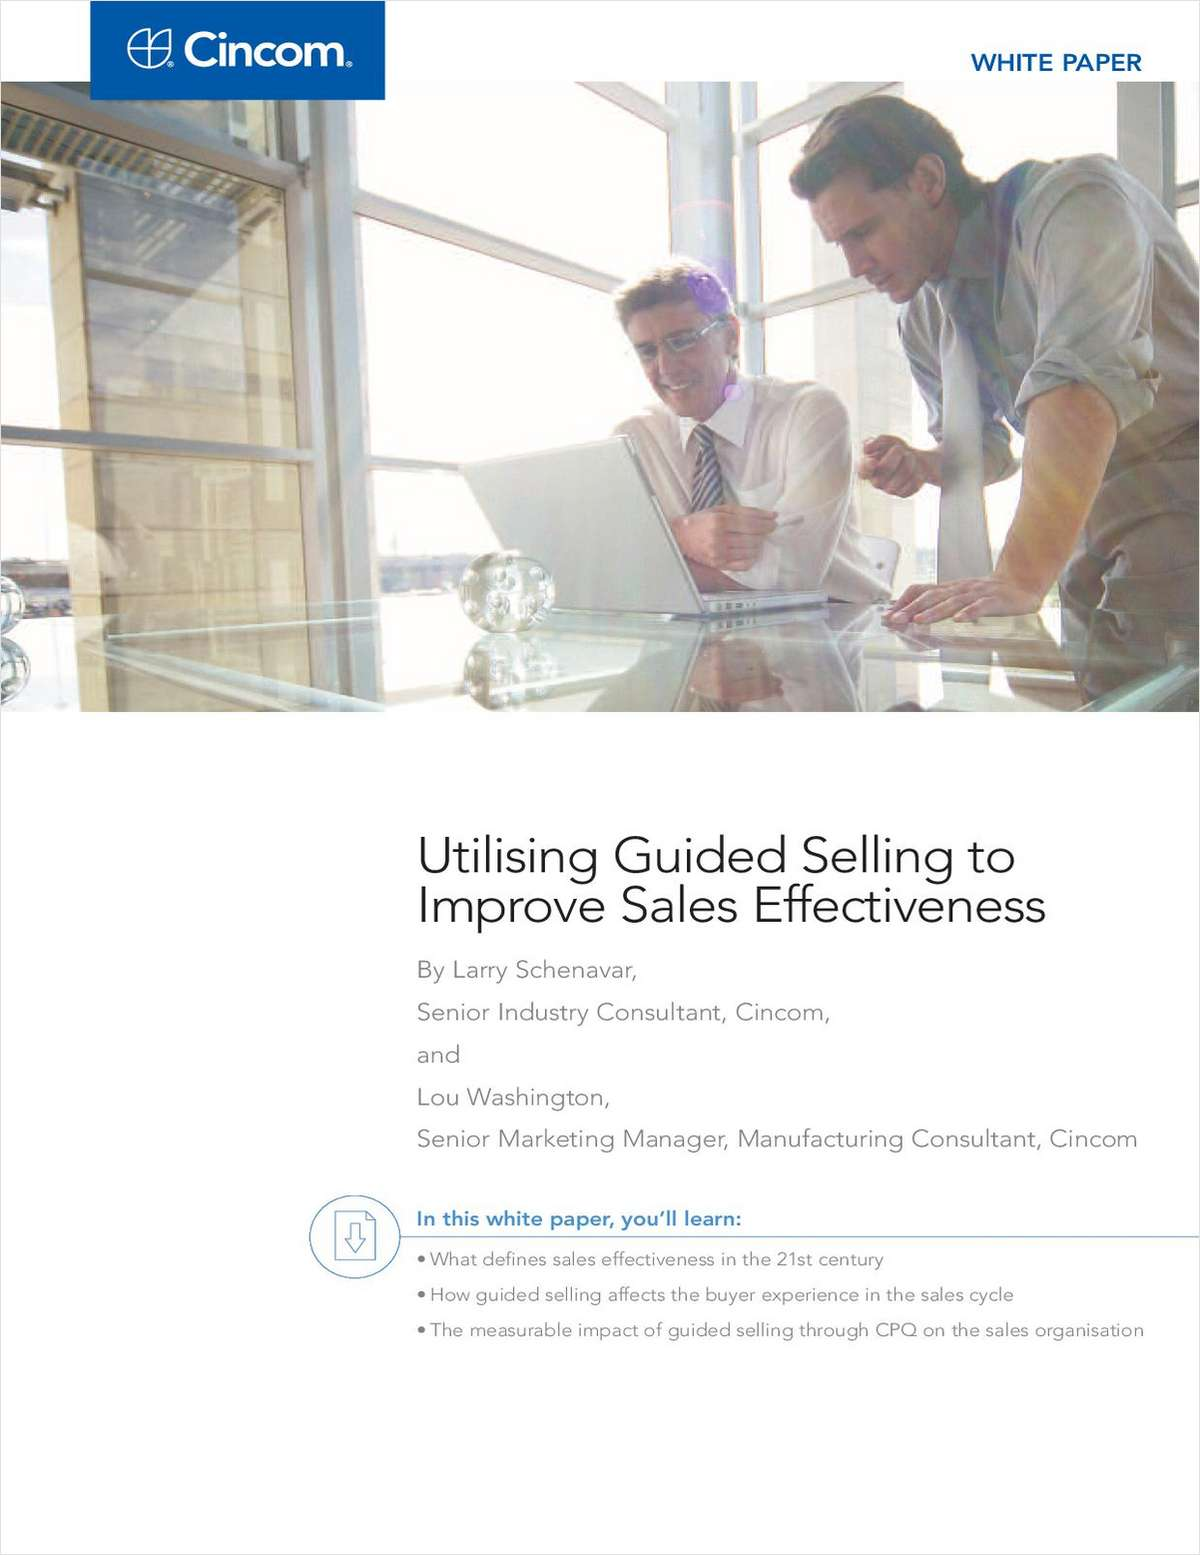 White Paper: Utilising Guided Selling to Improve Sales Effectiveness